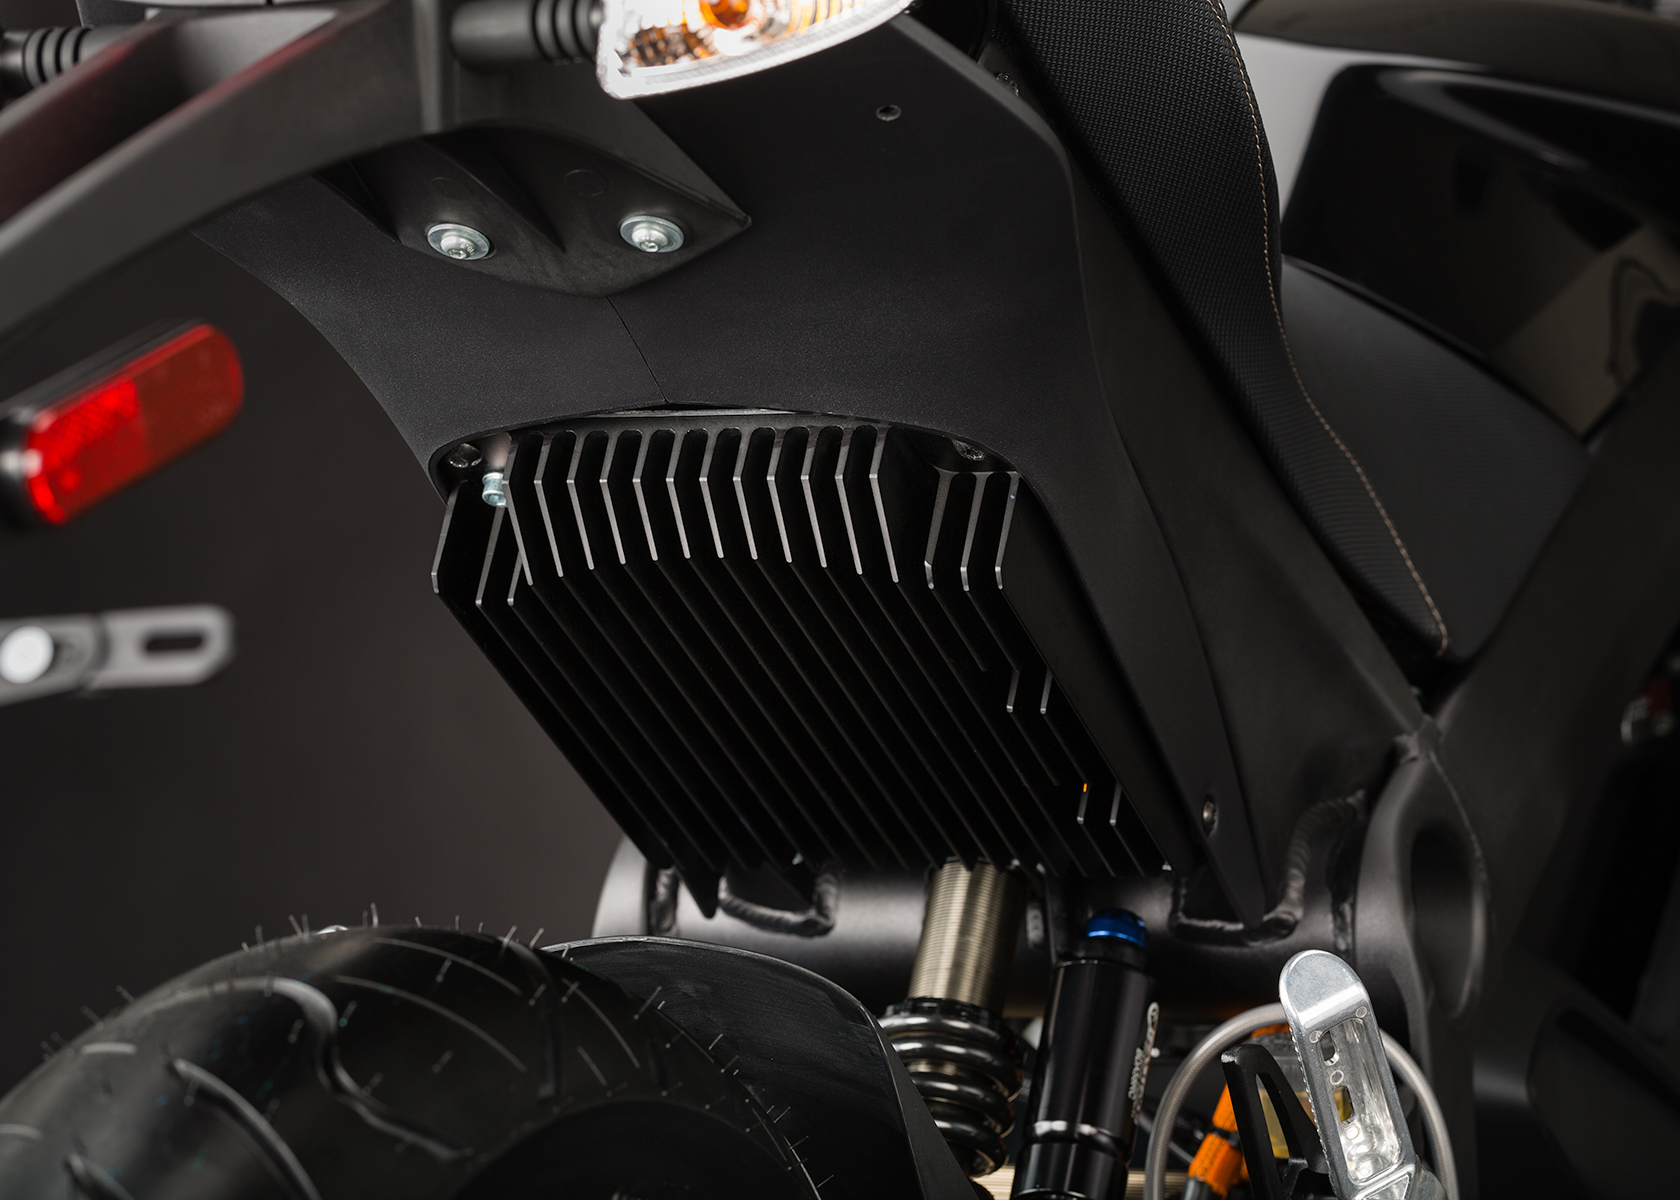 '.2014 Zero S Electric Motorcycle: Belt Controller.'